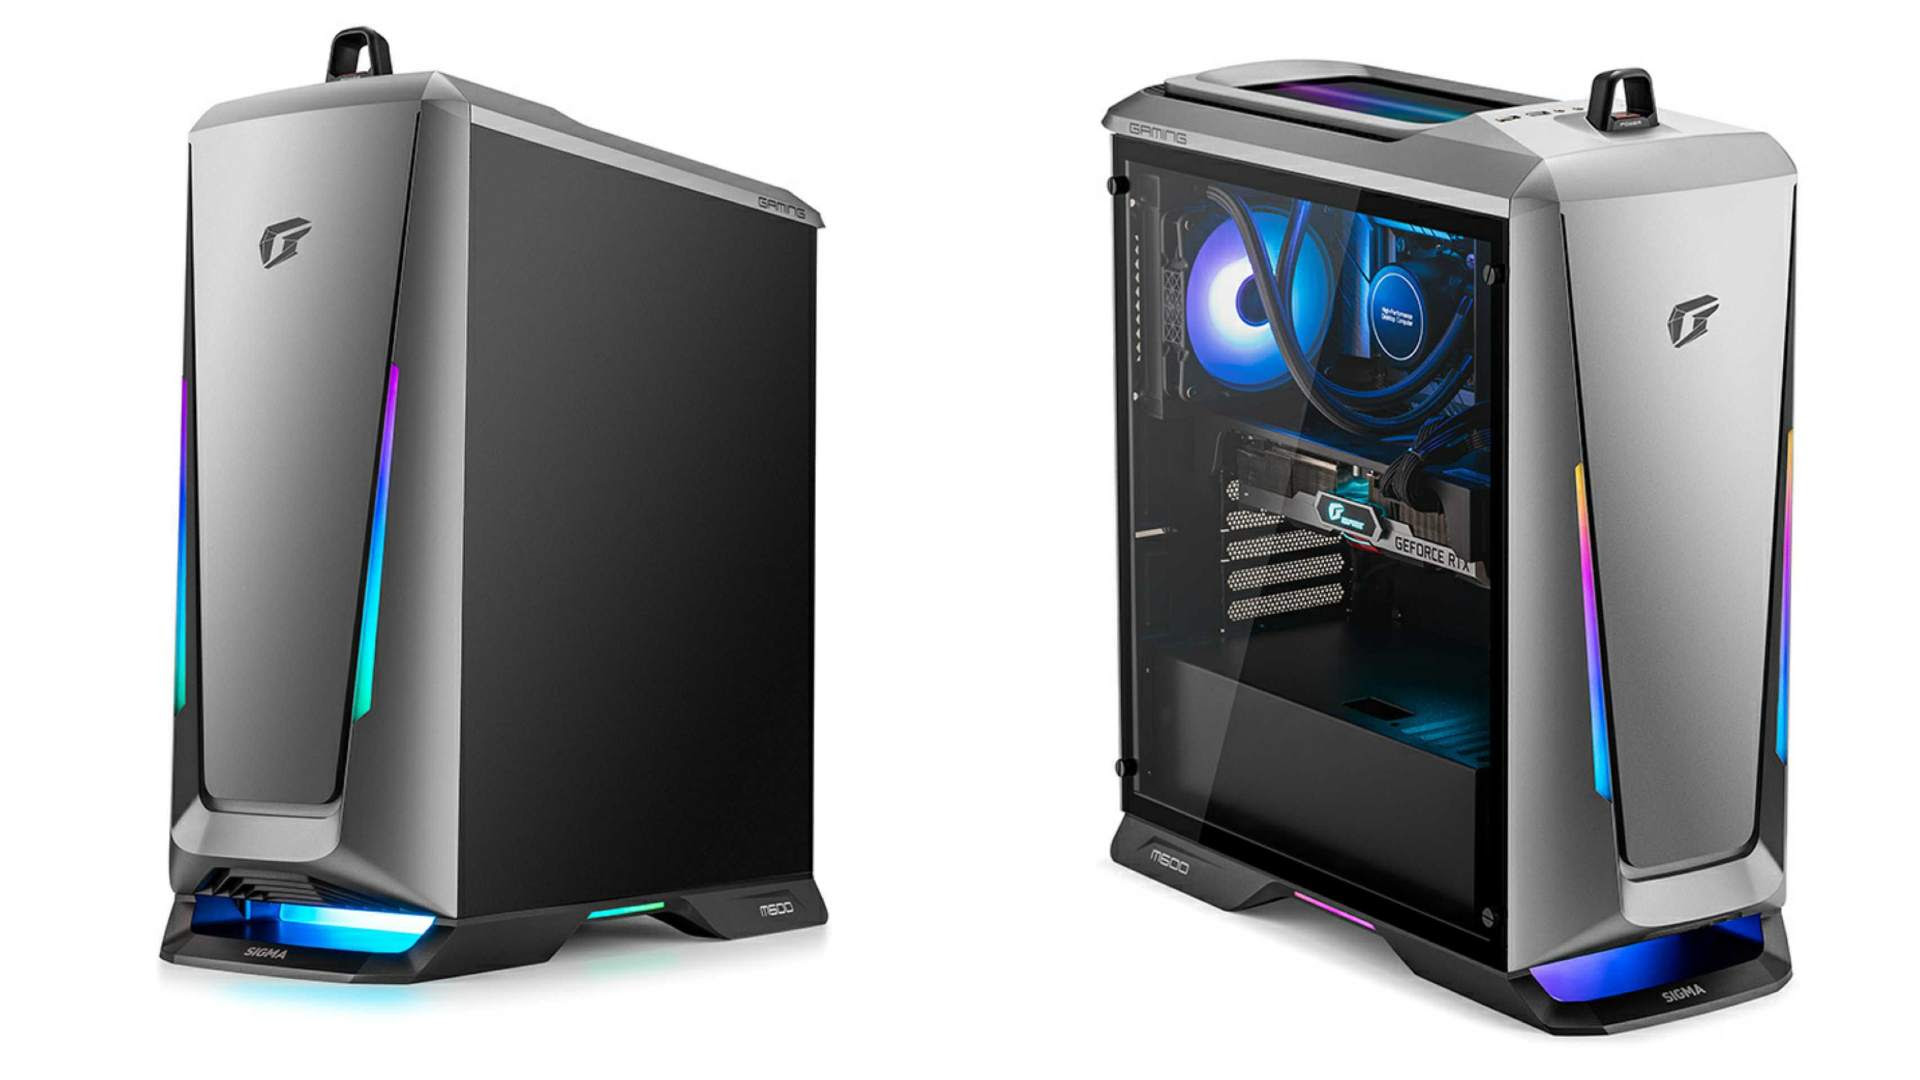 The iGame M600 Mirage features more than 70 individually configurable RGB LEDs. Image: Colorful